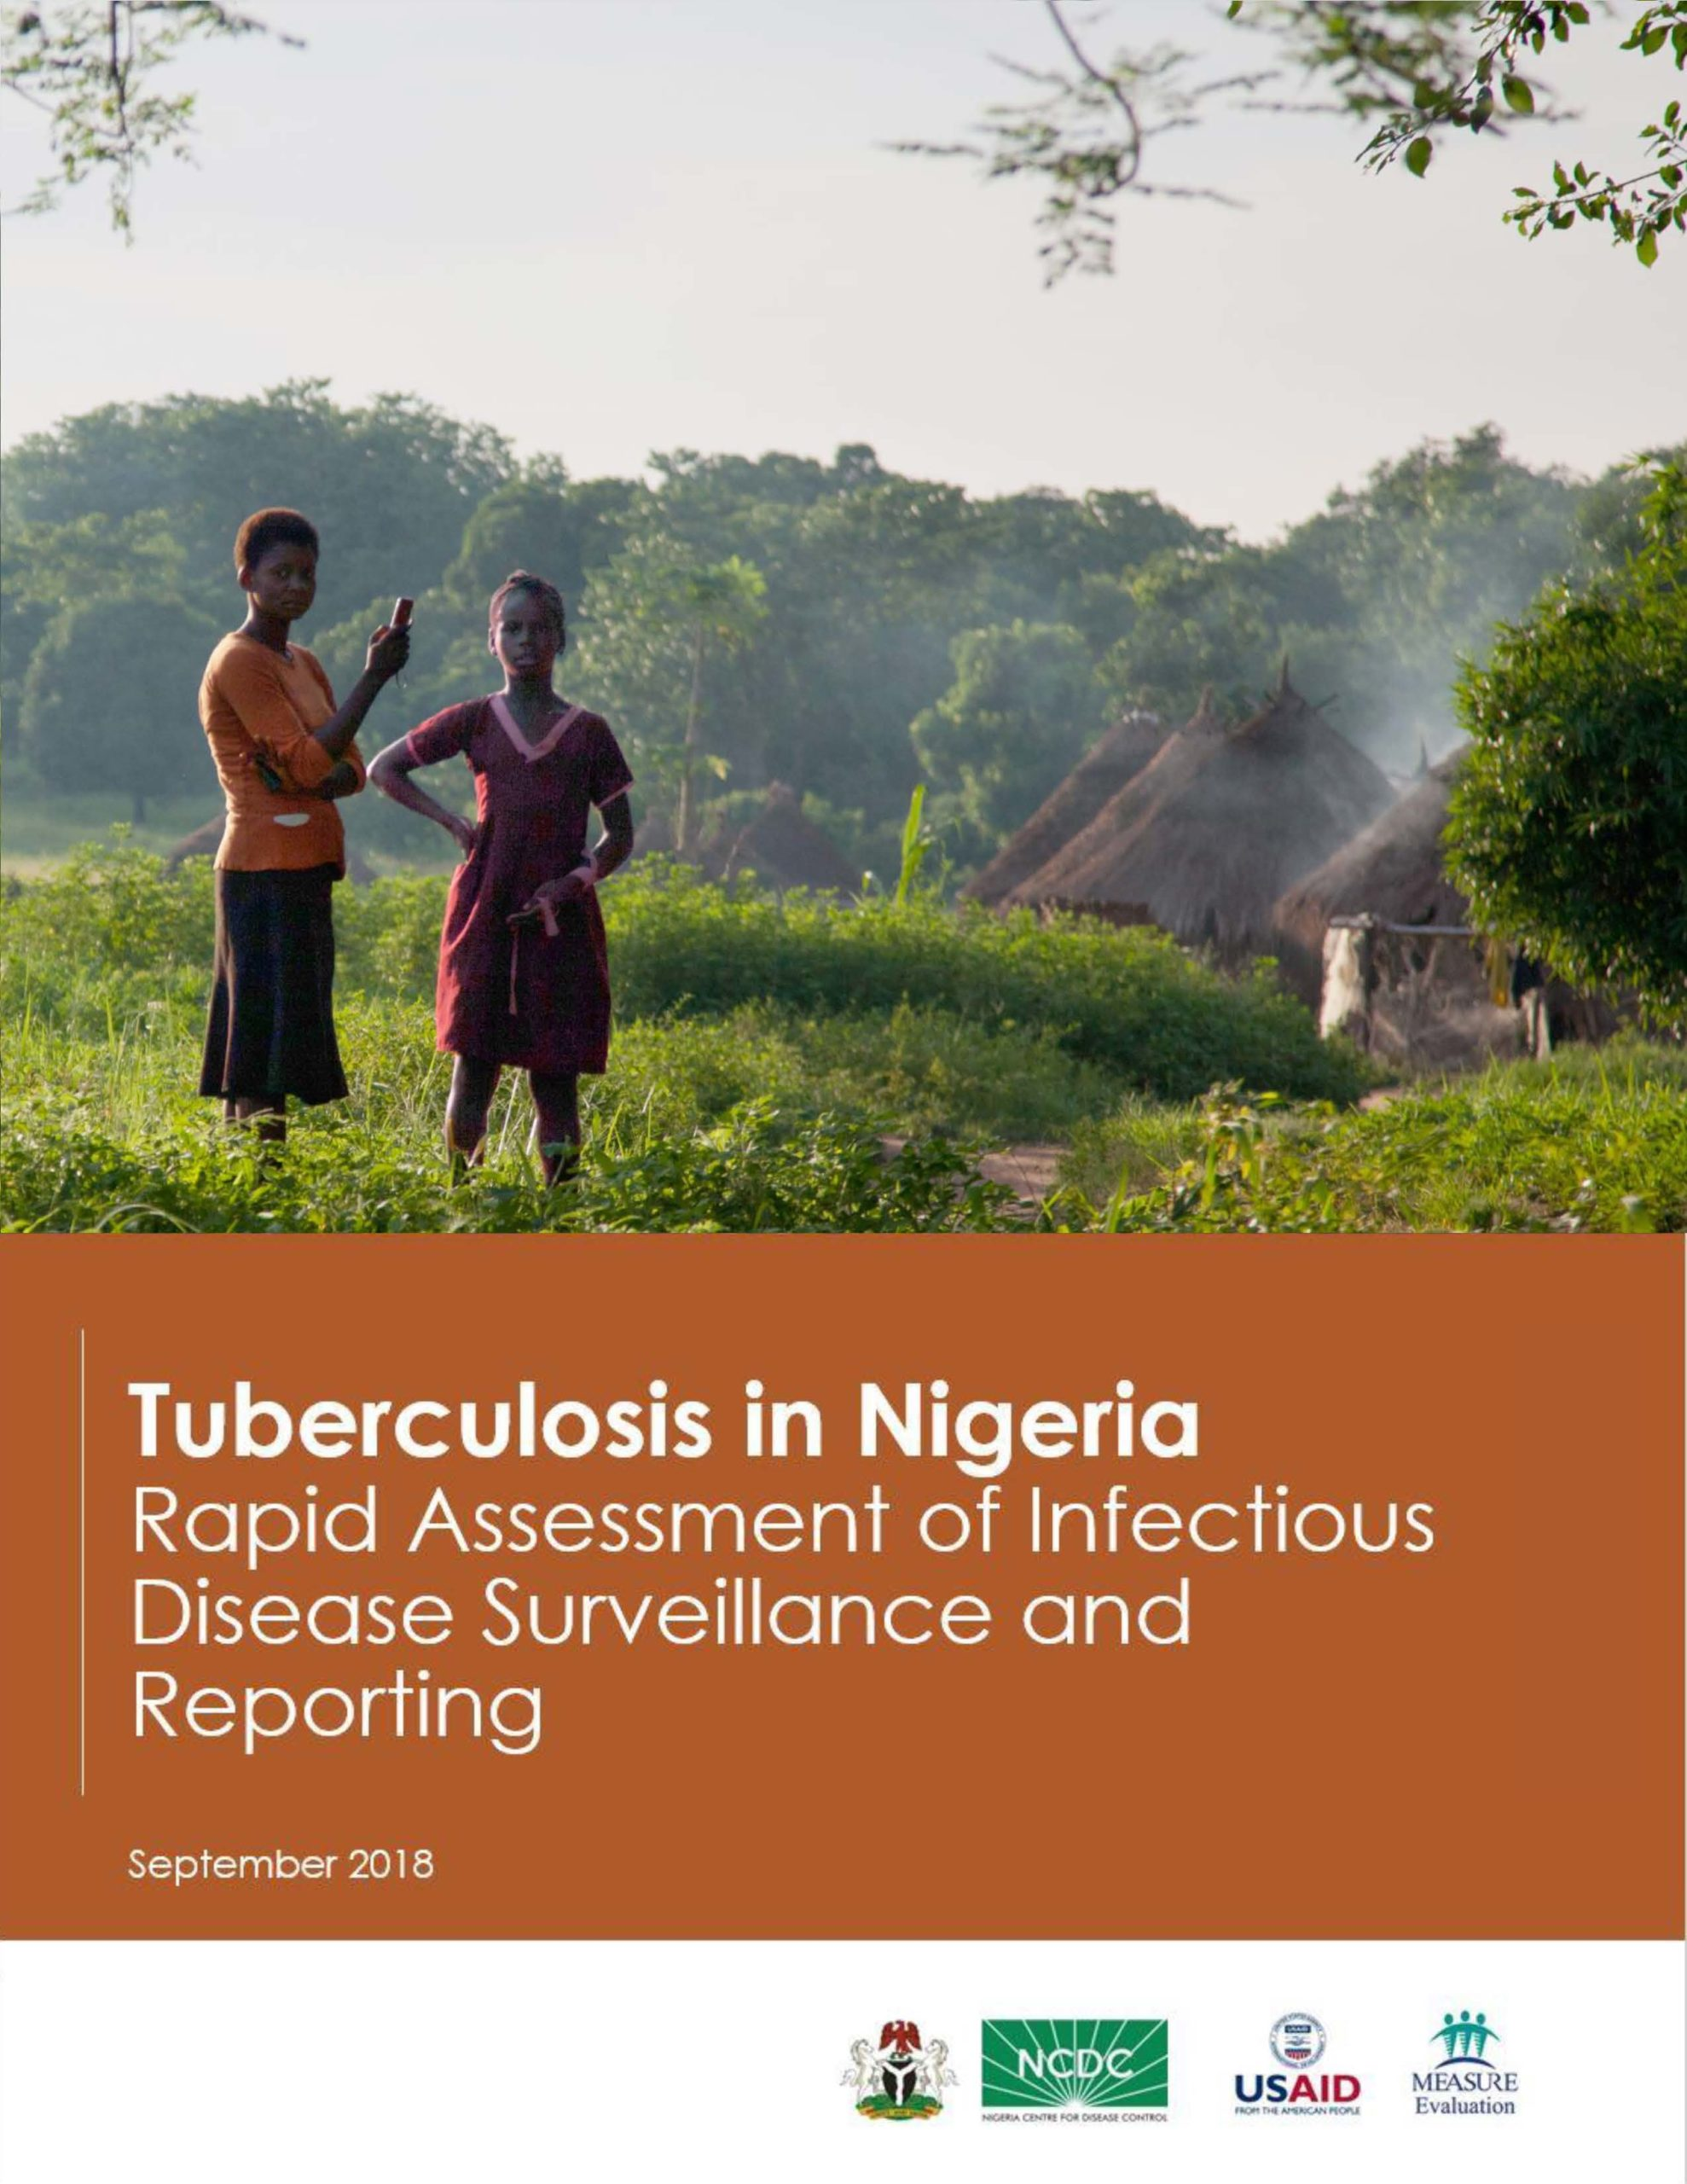 Tuberculosis in Nigeria: Rapid Assessment of Infectious Disease Surveillance and Reporting